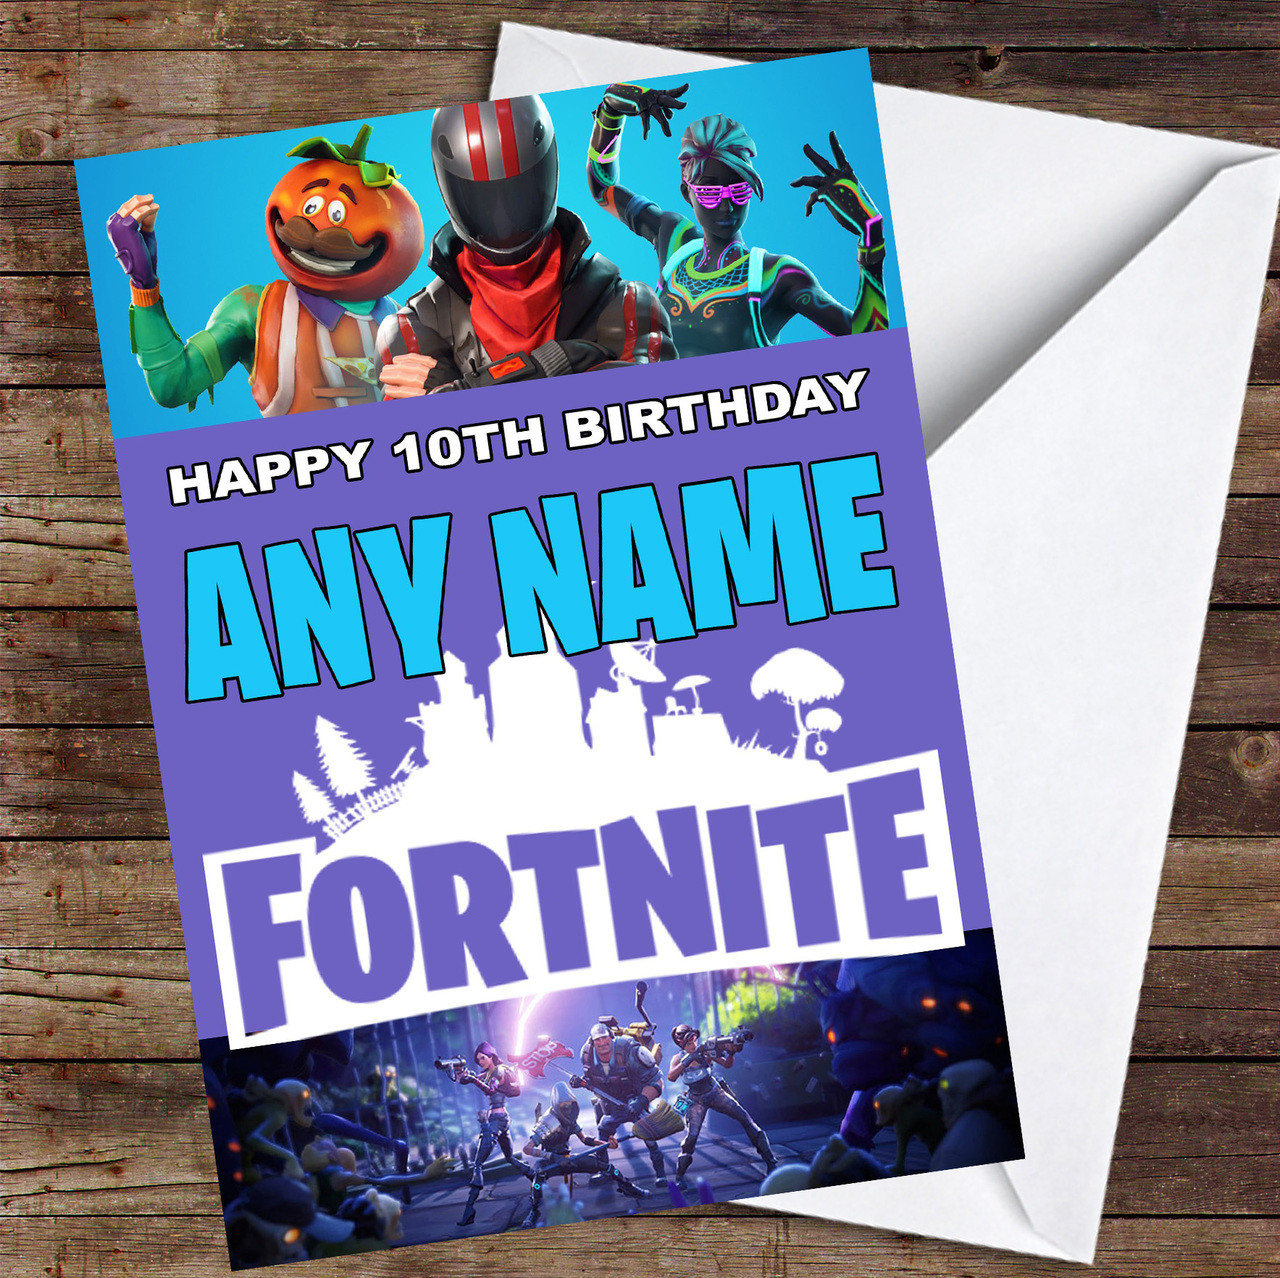 photo regarding Printable Children's Birthday Cards referred to as Sport Fortnite Individualized Childrens Birthday Card